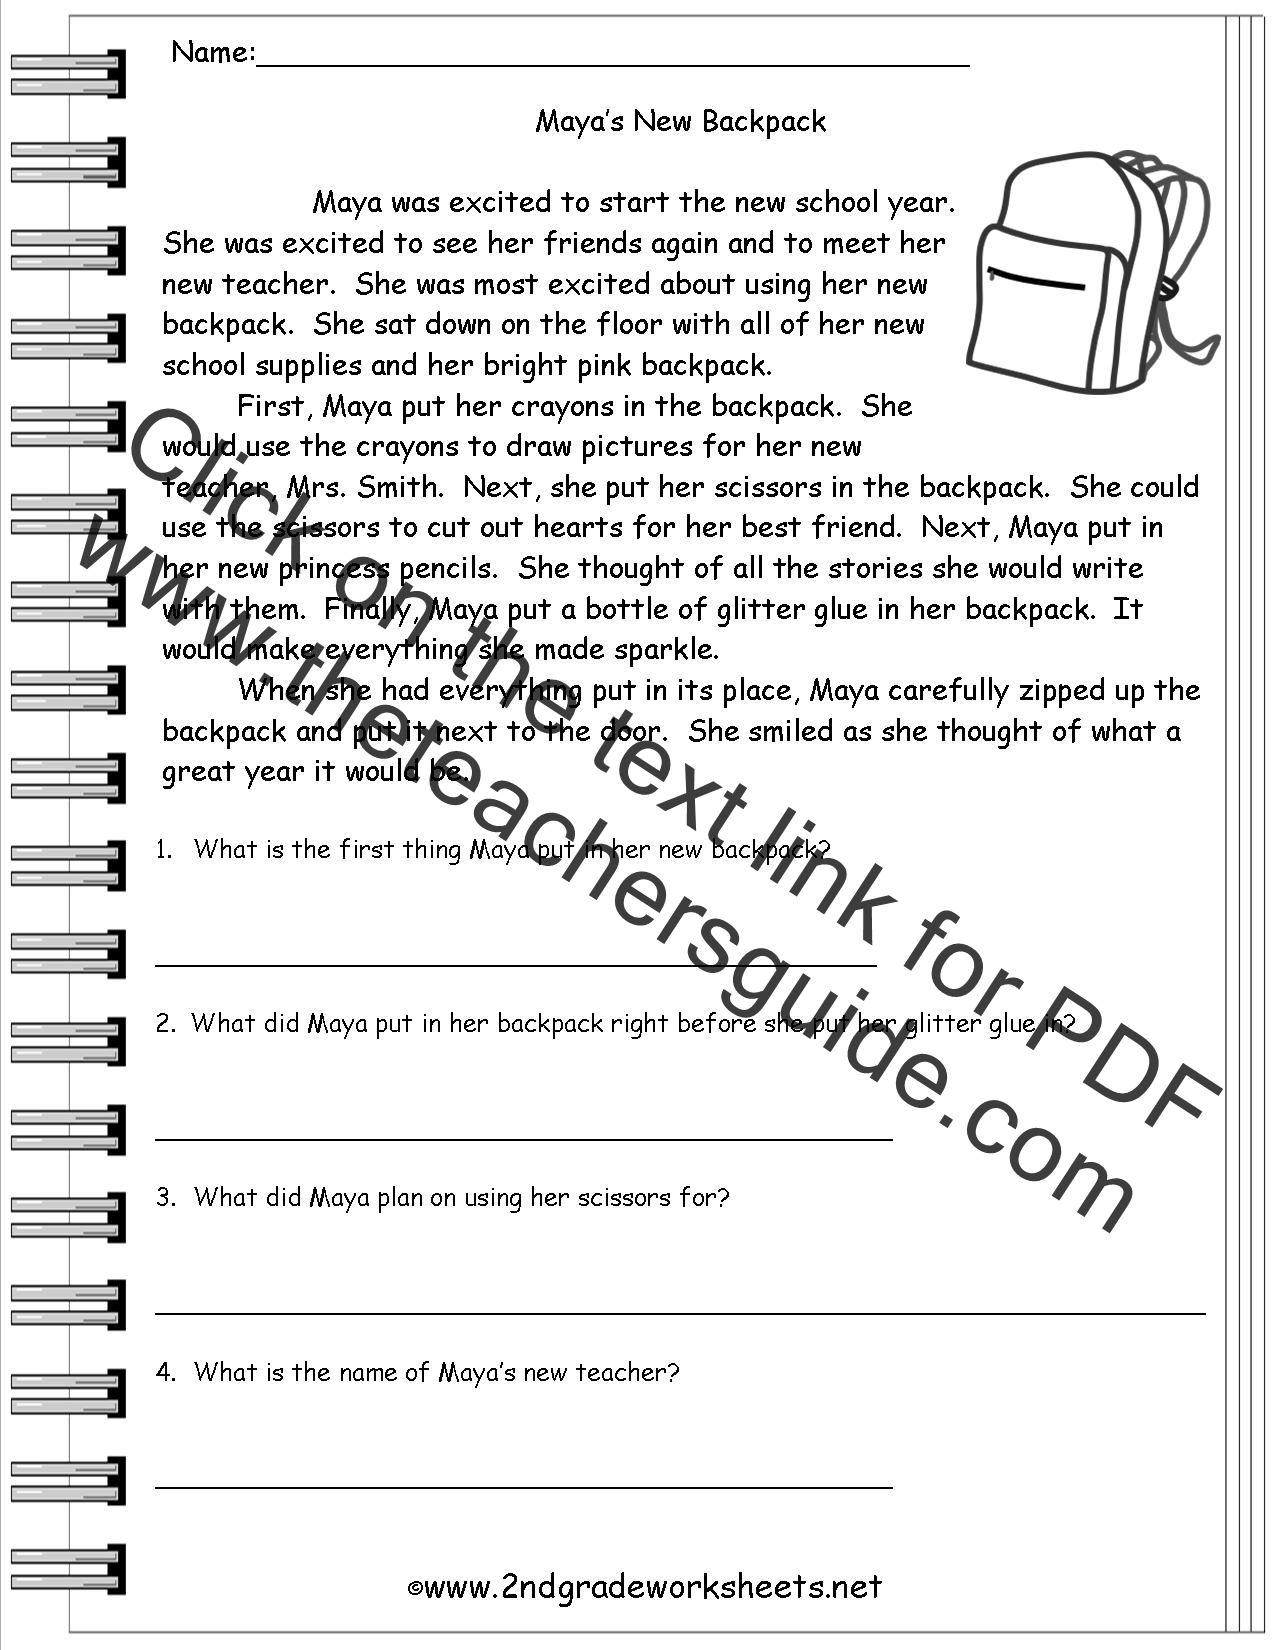 Worksheets Printable Reading Worksheets reading worksheeets literature worksheets